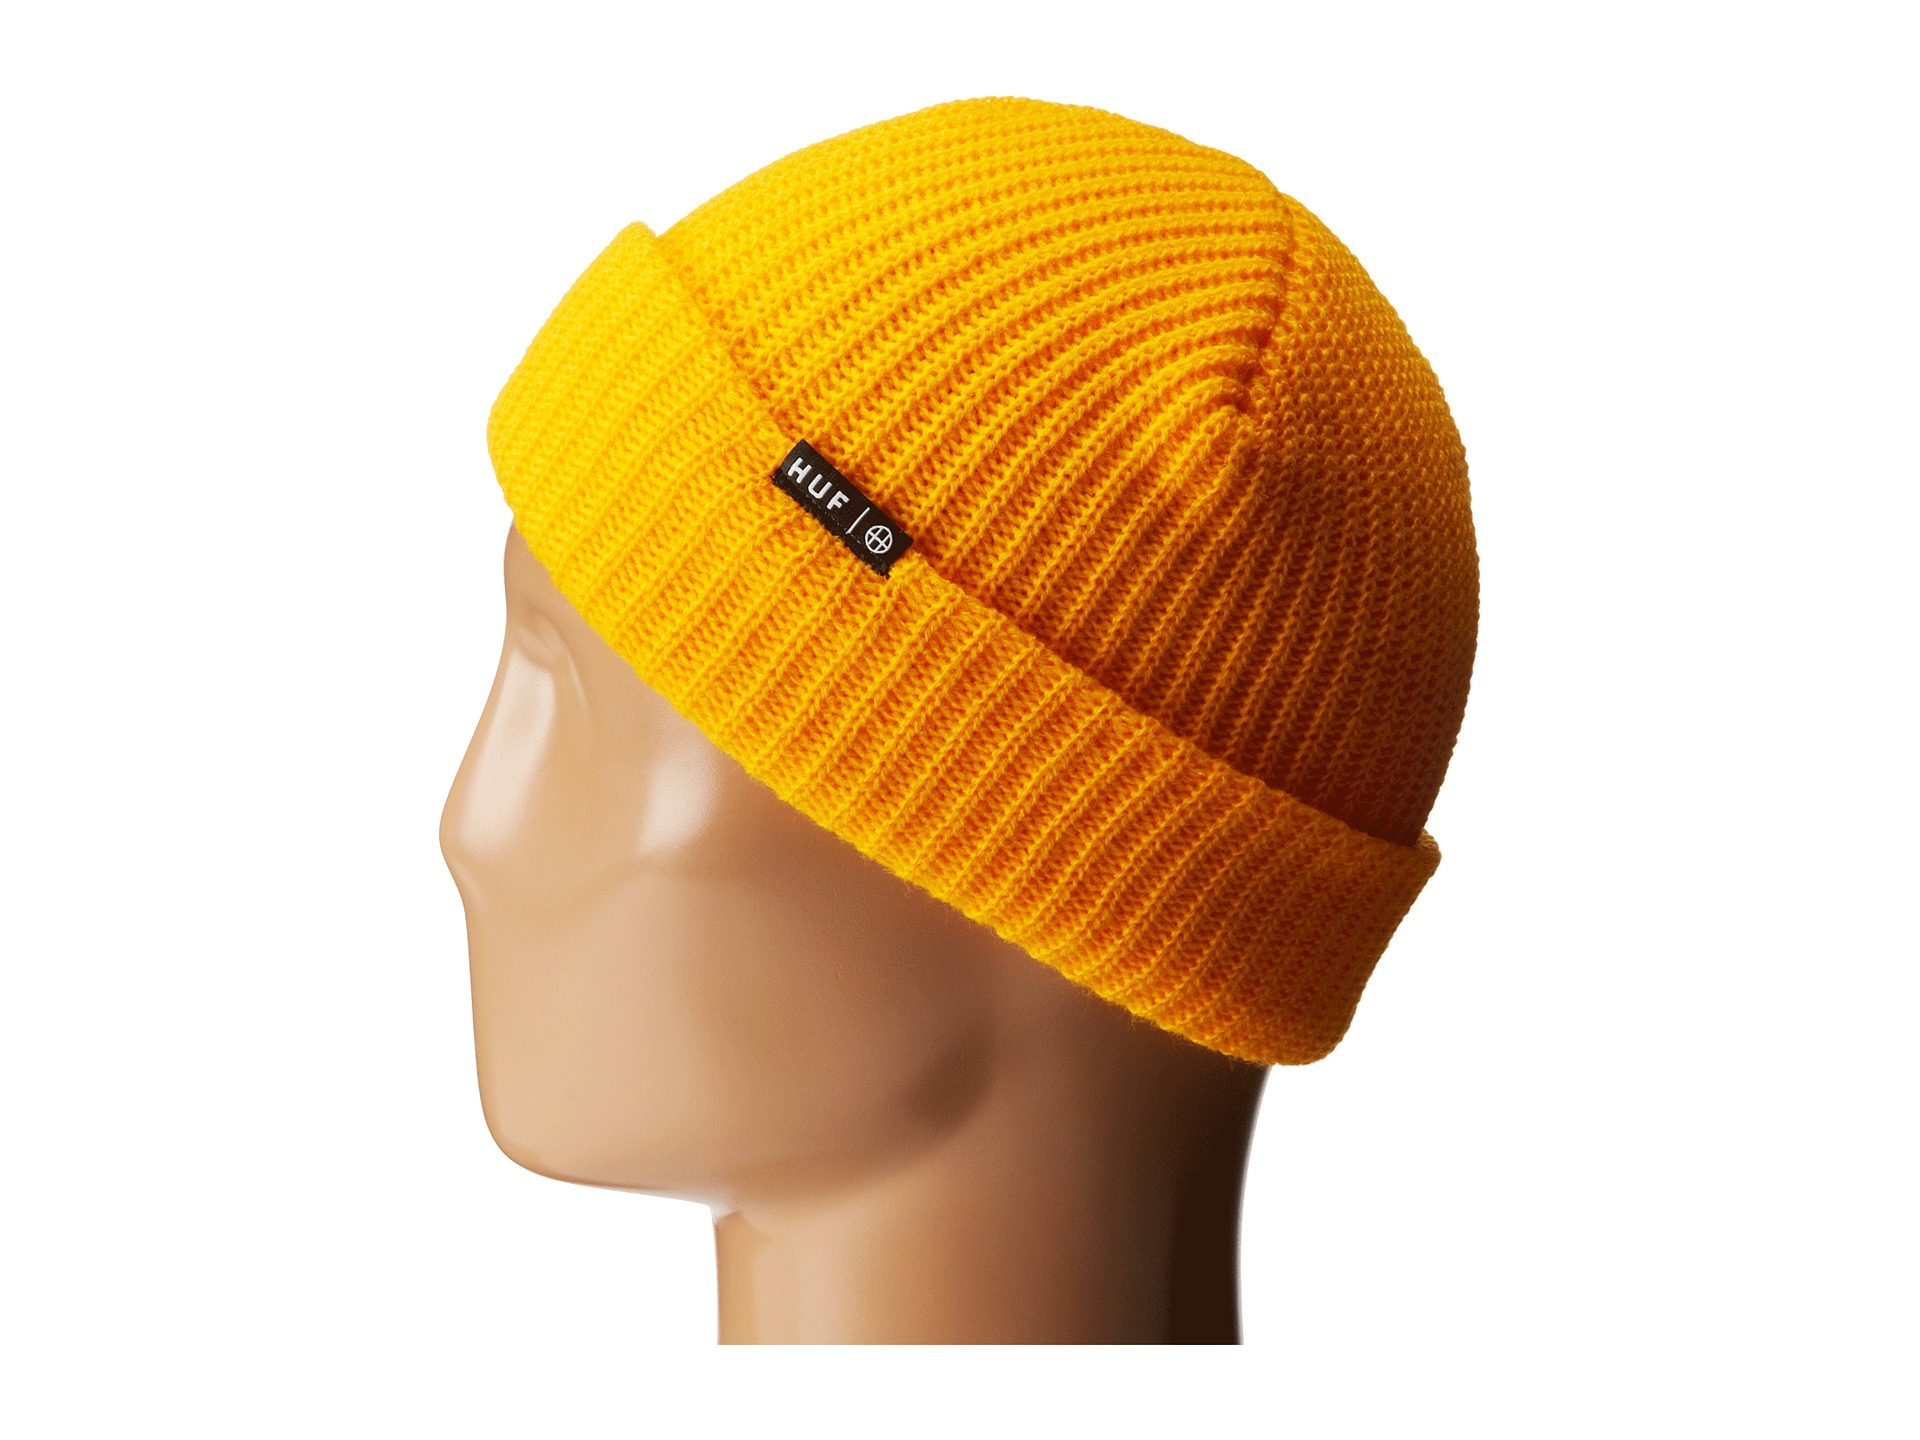 6c217cd89ec Lyst - Huf Usual Beanie in Yellow